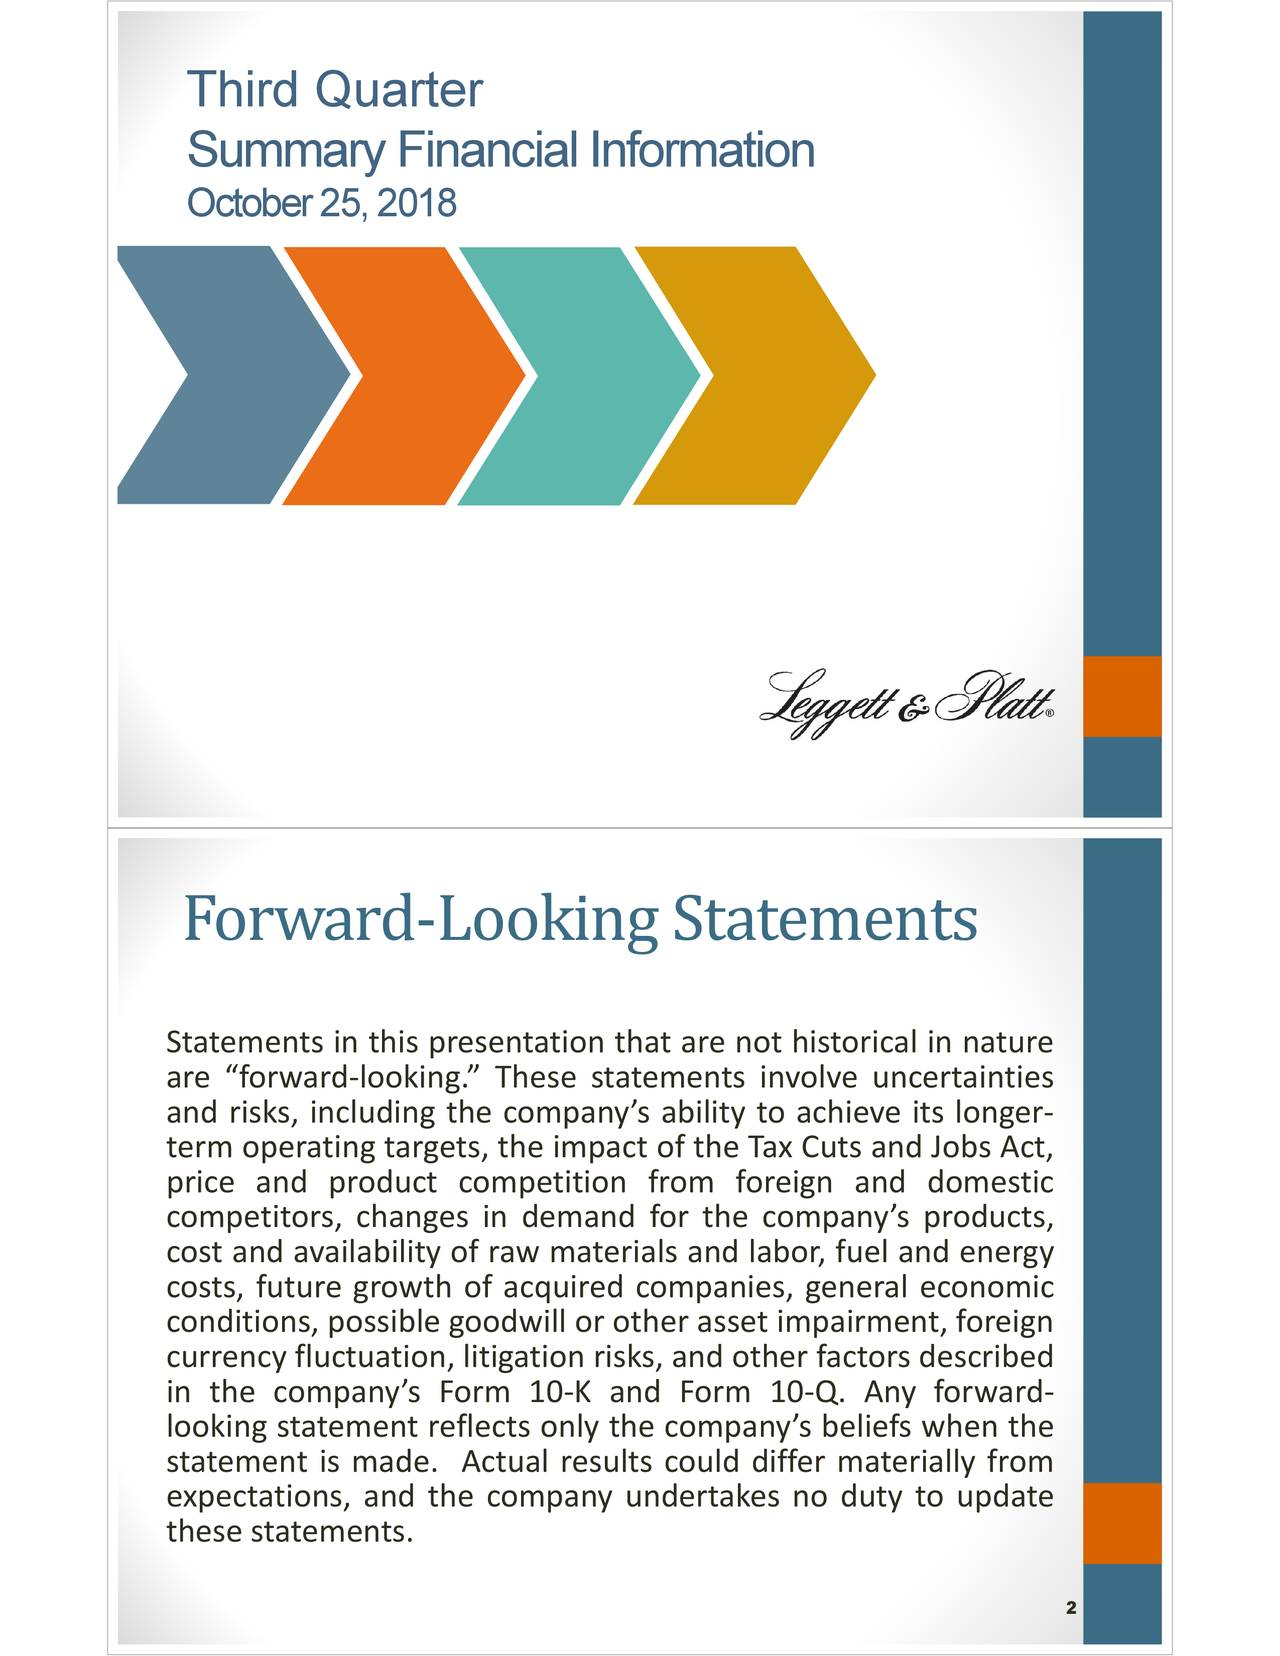 "Summary Financial Information October 25, 2018 Forward-Looking Statements Statements in this presentation that are not historical in nature are ""forward‐looking."" These statements involve uncertainties and risks, including the company's ability to achieve its longer‐ term operating targets, the impact of the Tax Cuts and Jobs Act, price and product competition from foreign and domestic competitors, changes in demand for the company's products, cost and availability of raw materials and labor, fuel and energy costs, future growth of acquired companies, general economic conditions, possible goodwill or other asset impairment, foreign currency fluctuation, litigation risks, and other factors described in the company's Form 10‐K and Form 10‐Q. Any forward‐ looking statement reflects only the company's beliefs when the statement is made. Actual results could differ materially from expectations, and the company undertakes no duty to update these statements. 2"